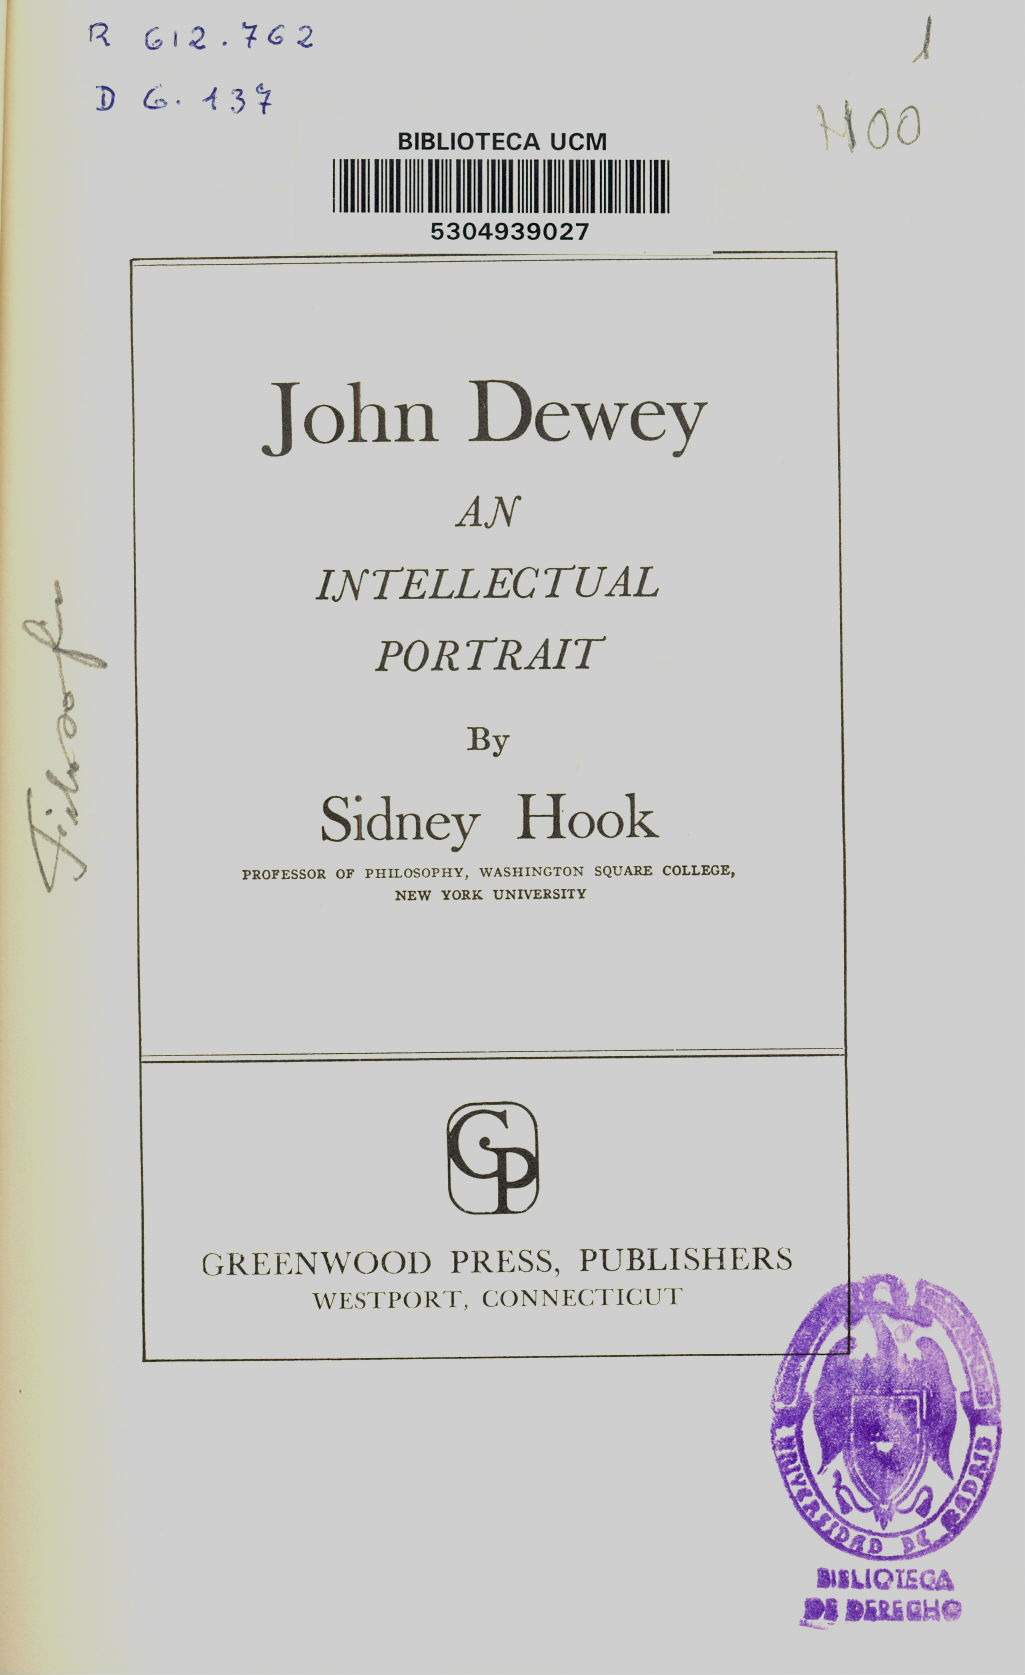 essays in honor of john dewey John dewey's educational philosophy at the occasion of a banquet in honor of his in this essay, i will attempt to map dewey's reception and.